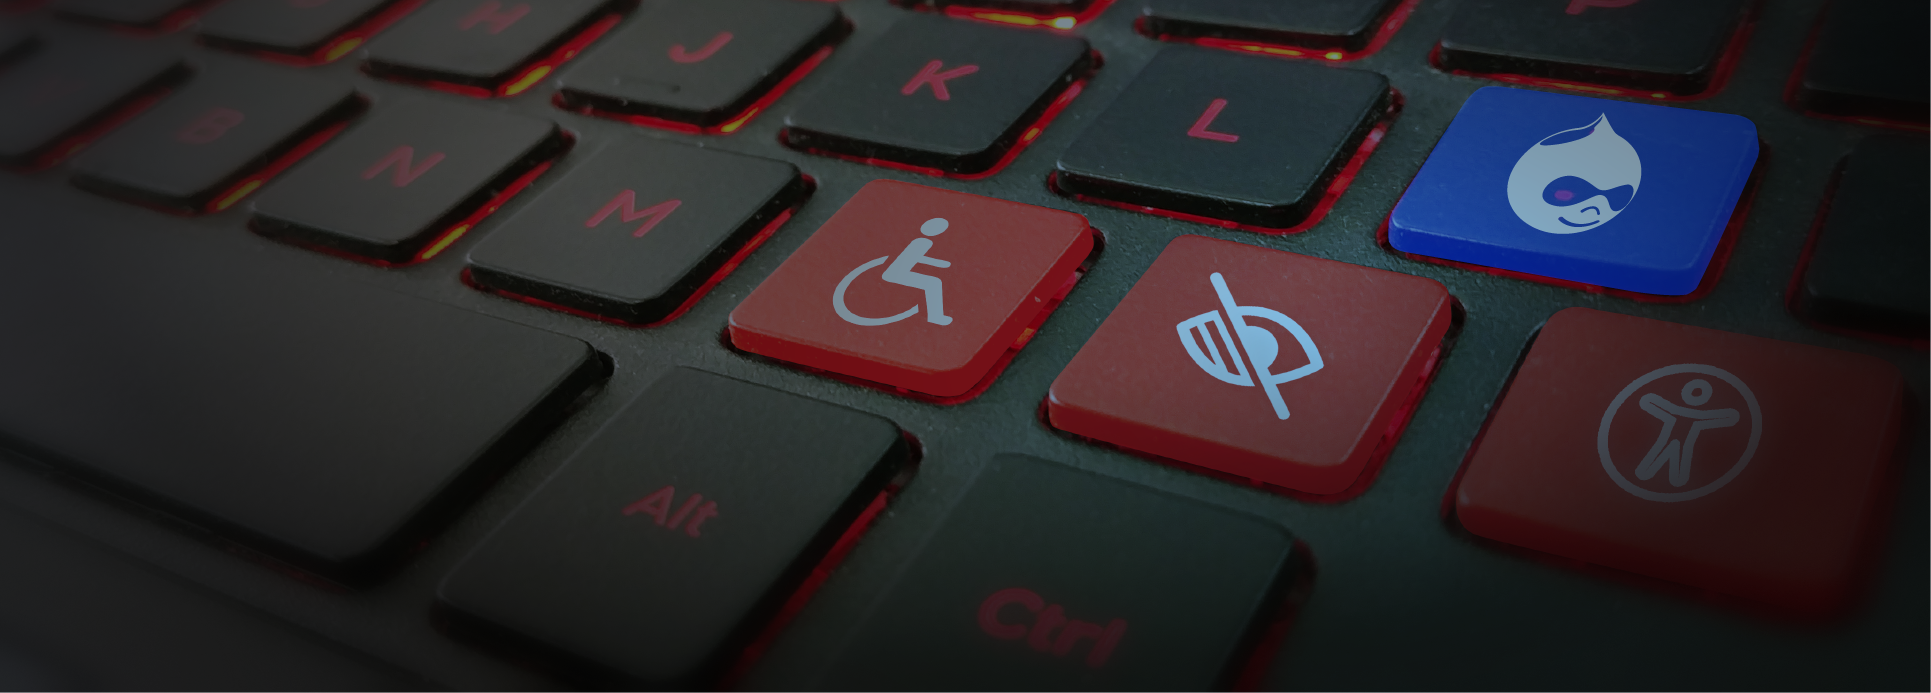 Srijan Technologies: Drupal and Accessibility: Does the Community Stand by What it Preaches? - RapidAPI